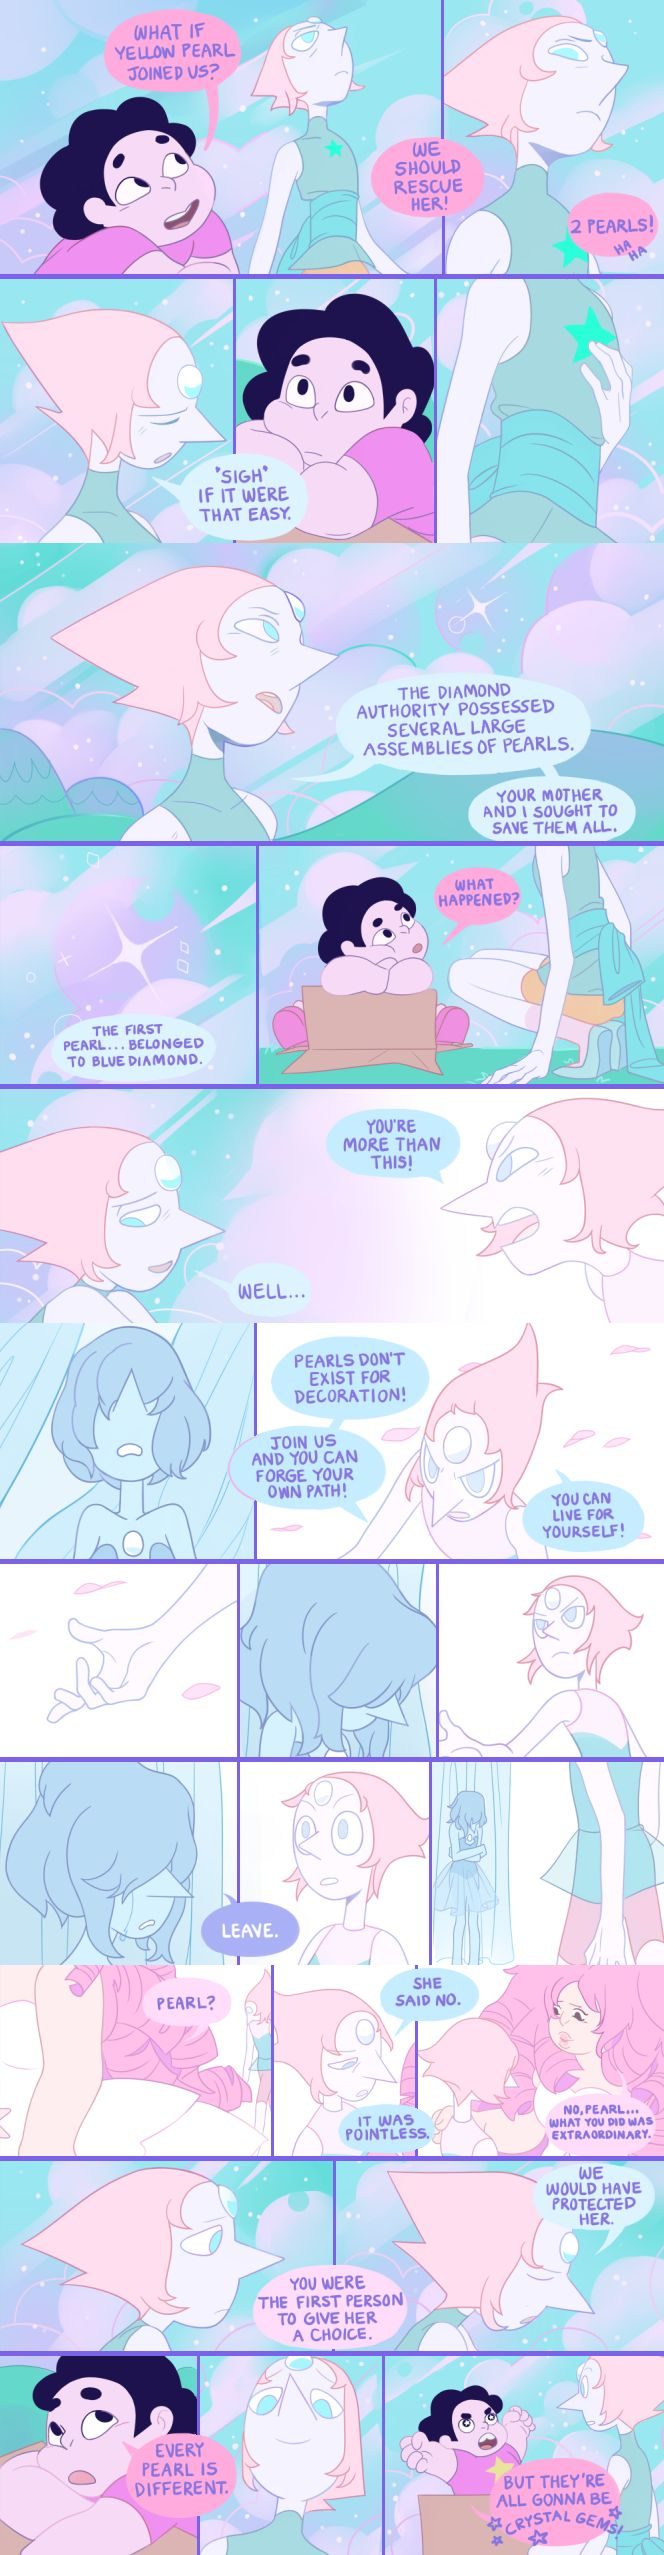 Not all Pearls are renegade.